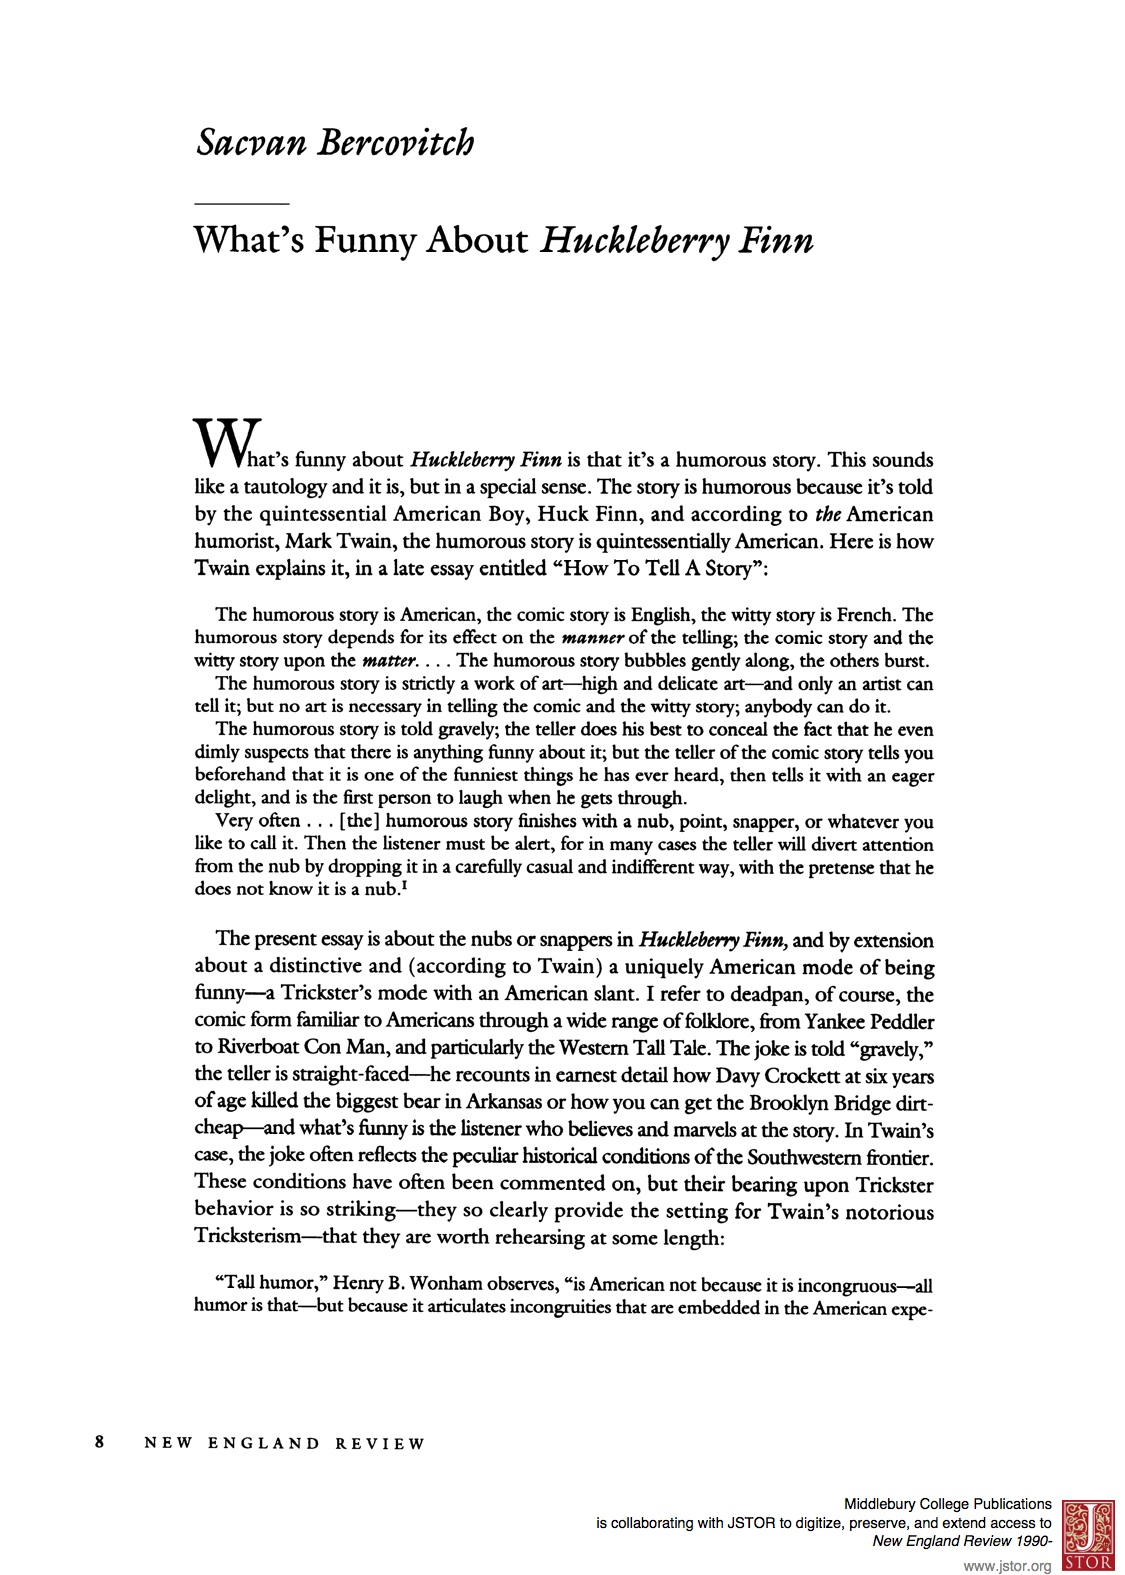 Huckleberry finn essay huckleberry finn book review buy essay satire